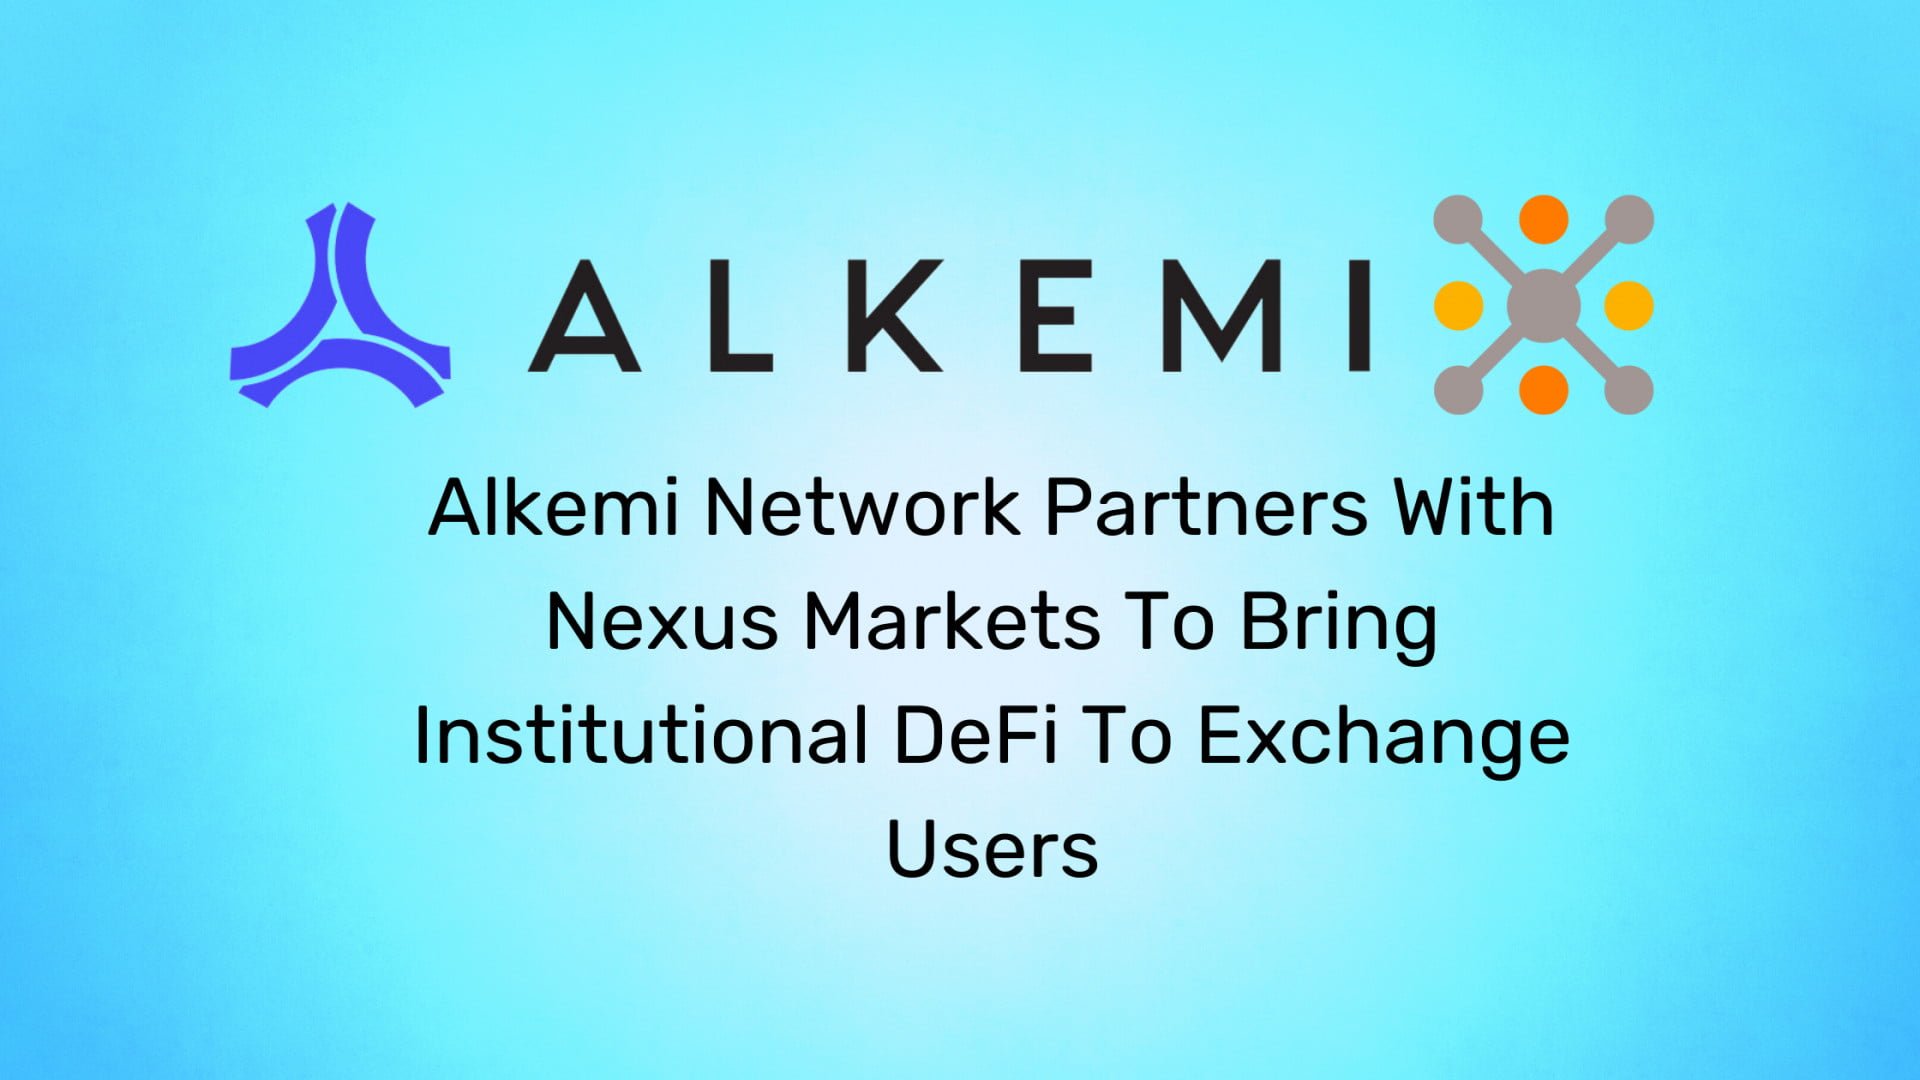 Alkemi Network Partners With Nexus Markets To Bring Institutional DeFi To Exchange Users